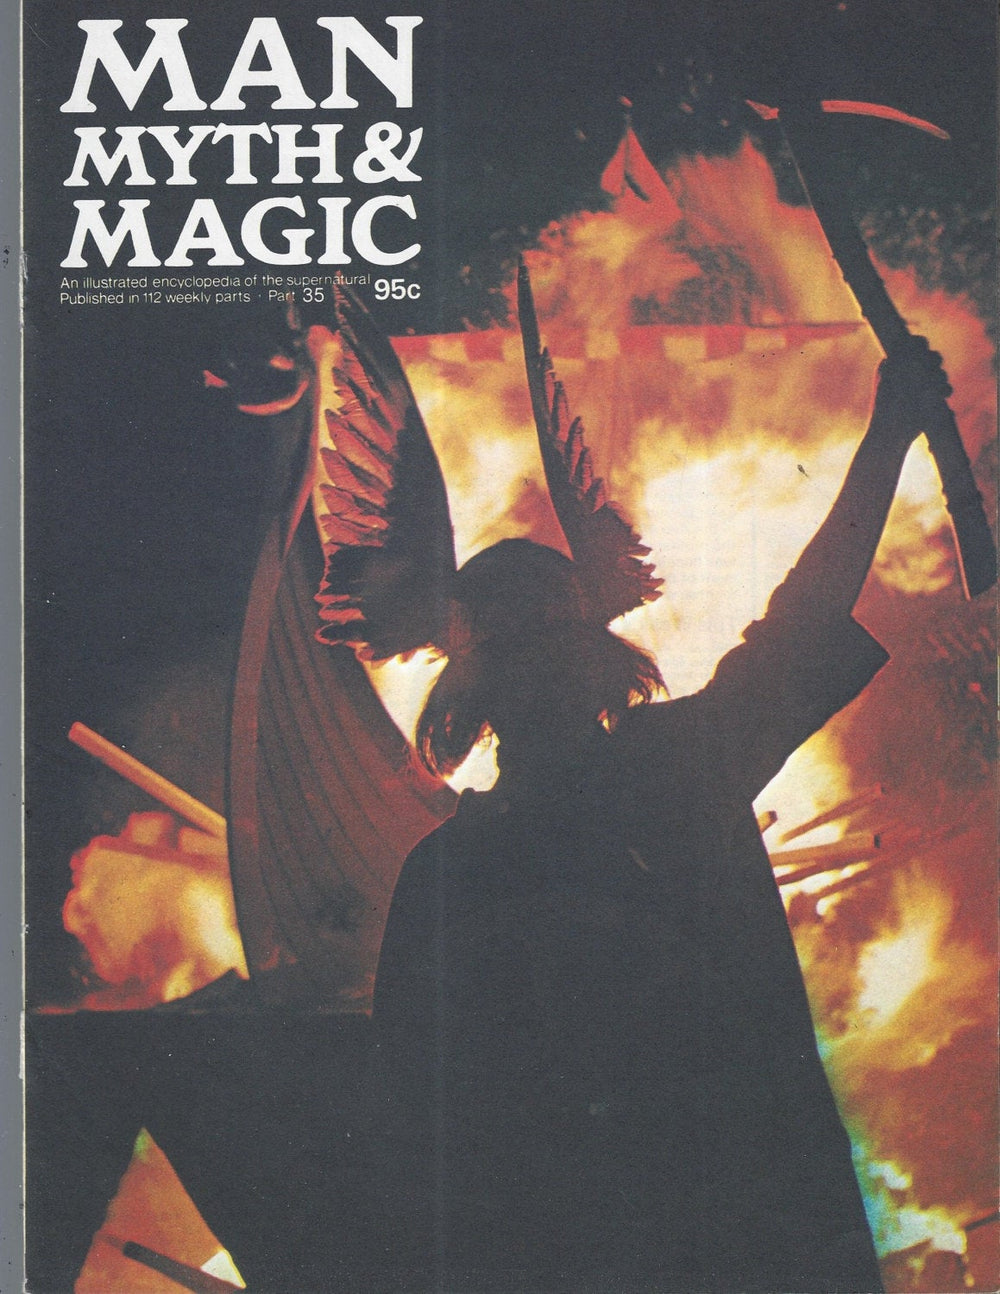 Man, Myth and Magic Part 35 Magazine by Richard Cavendish 1970